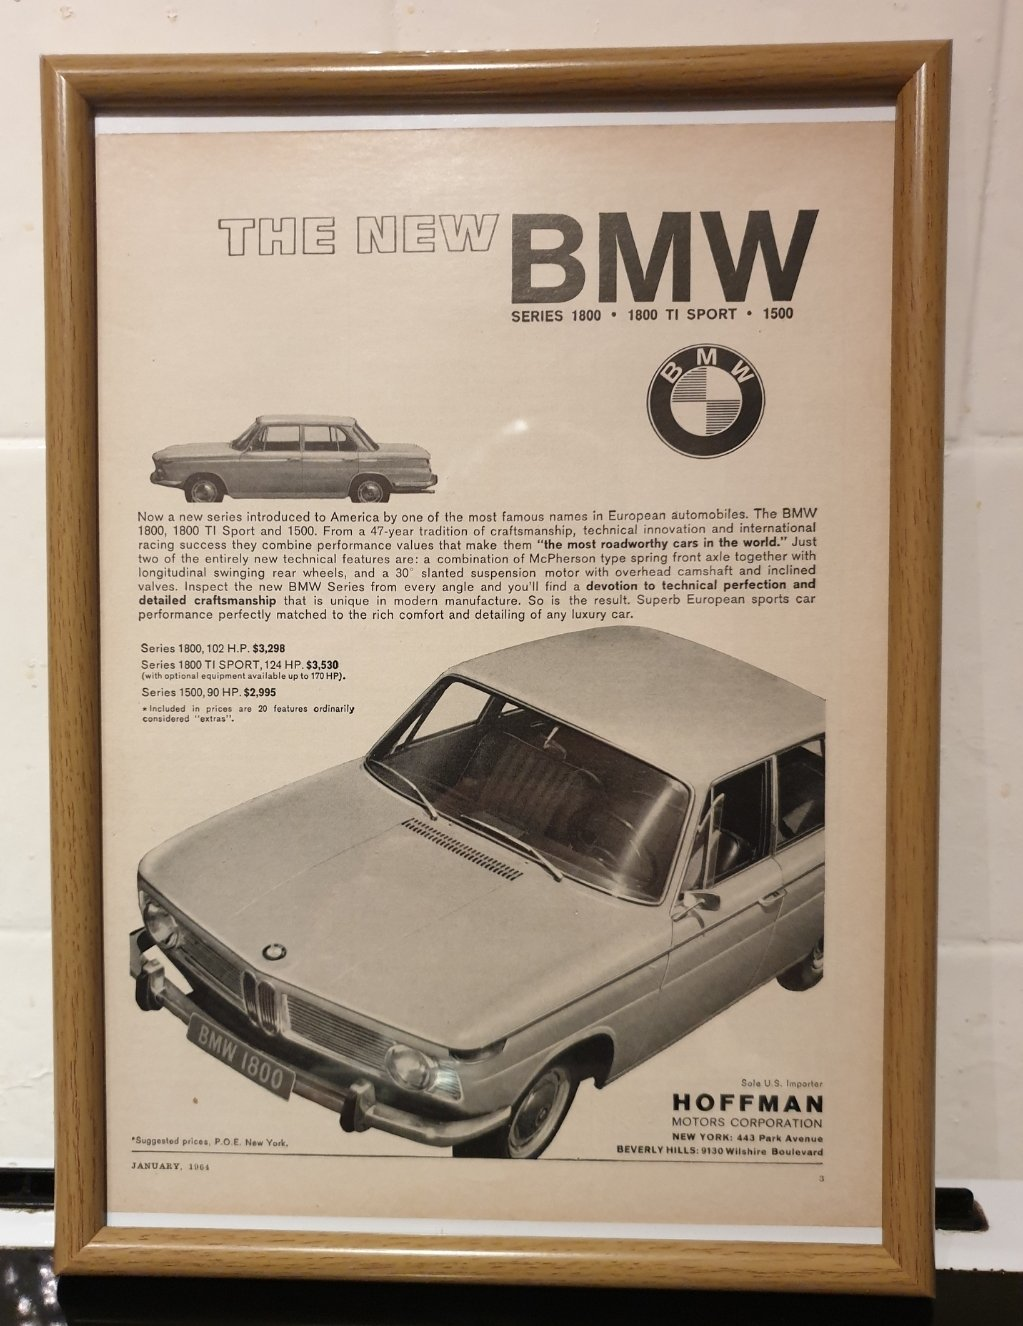 1964 BMW 1800 Framed Advert Original  For Sale (picture 1 of 2)